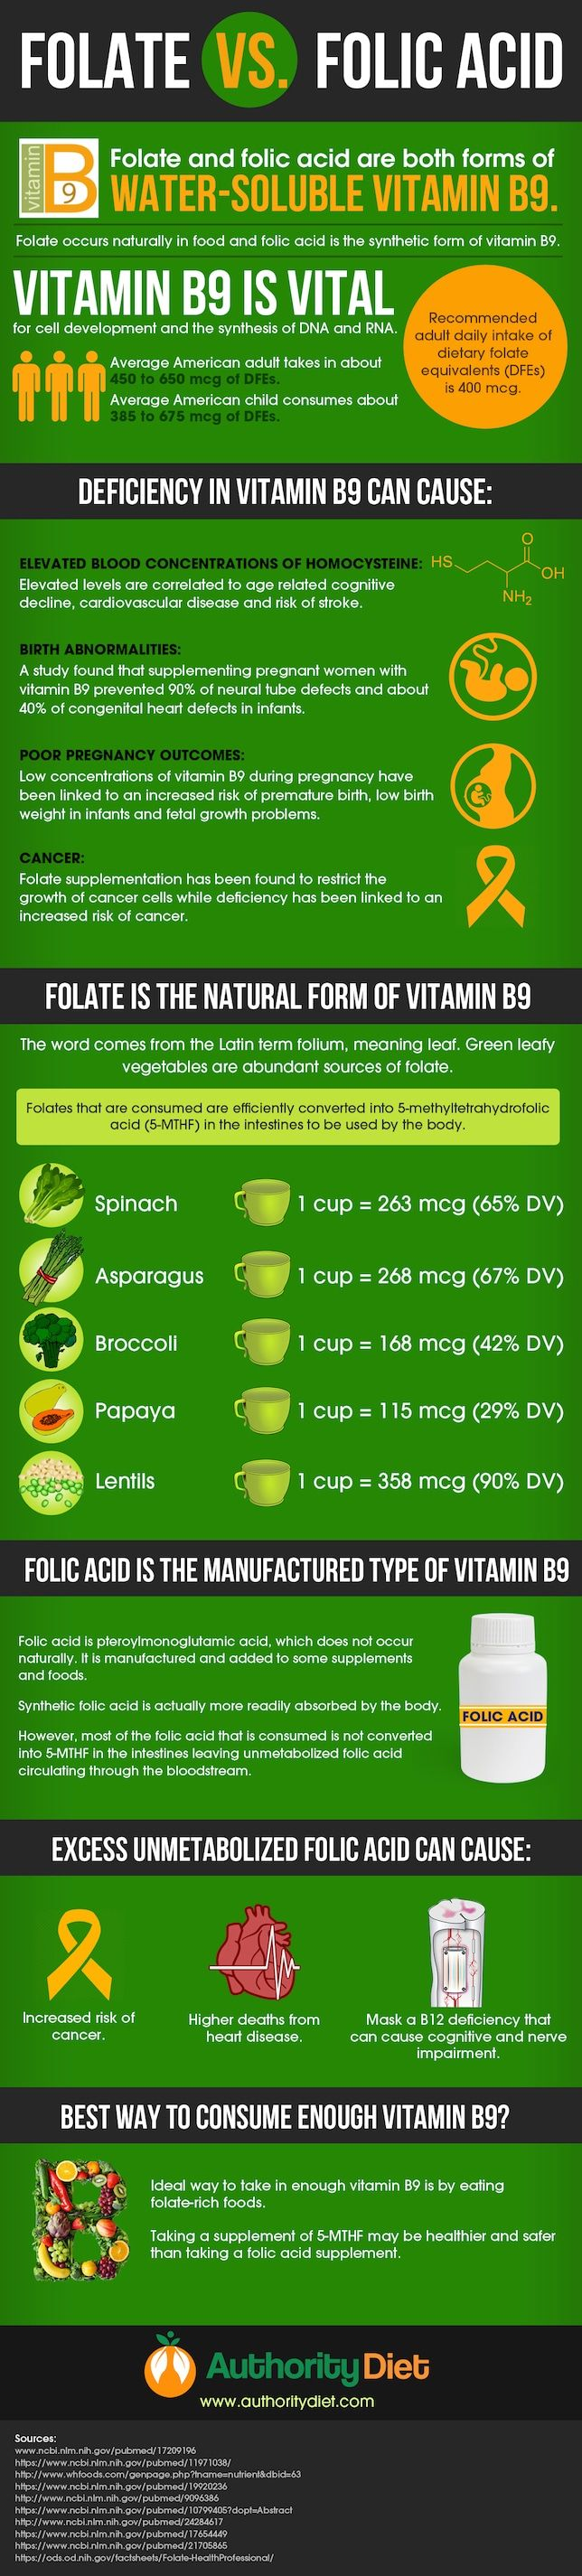 Benefits of Folate vs Folic Acid for a Healthy Diet  #carbswitch Please Repin